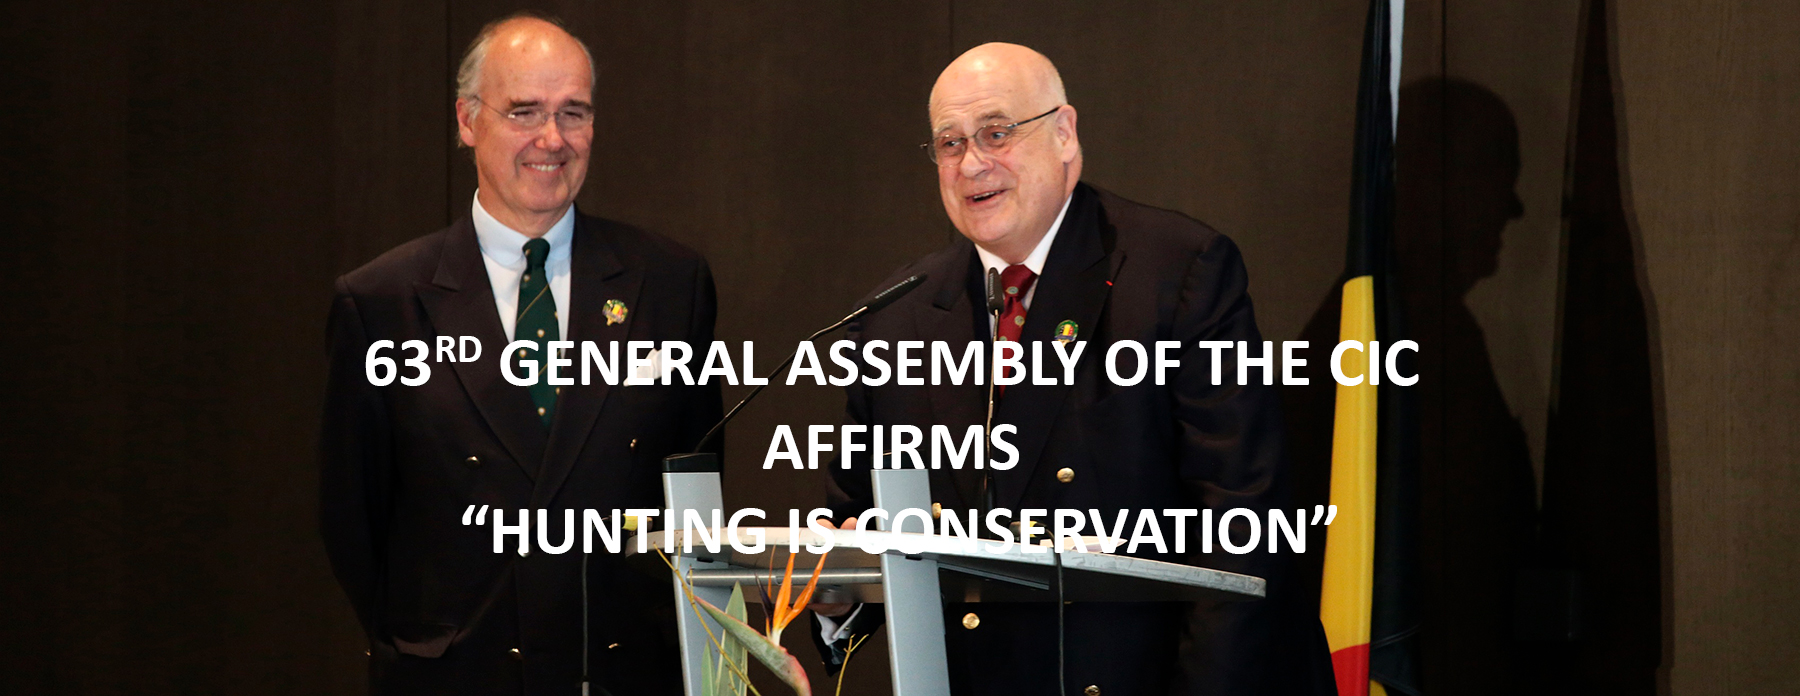 "63RD GENERAL ASSEMBLY OF THE CIC AFFIRMS ""HUNTING IS CONSERVATION"" <br> June 2016, Volume 14-3"